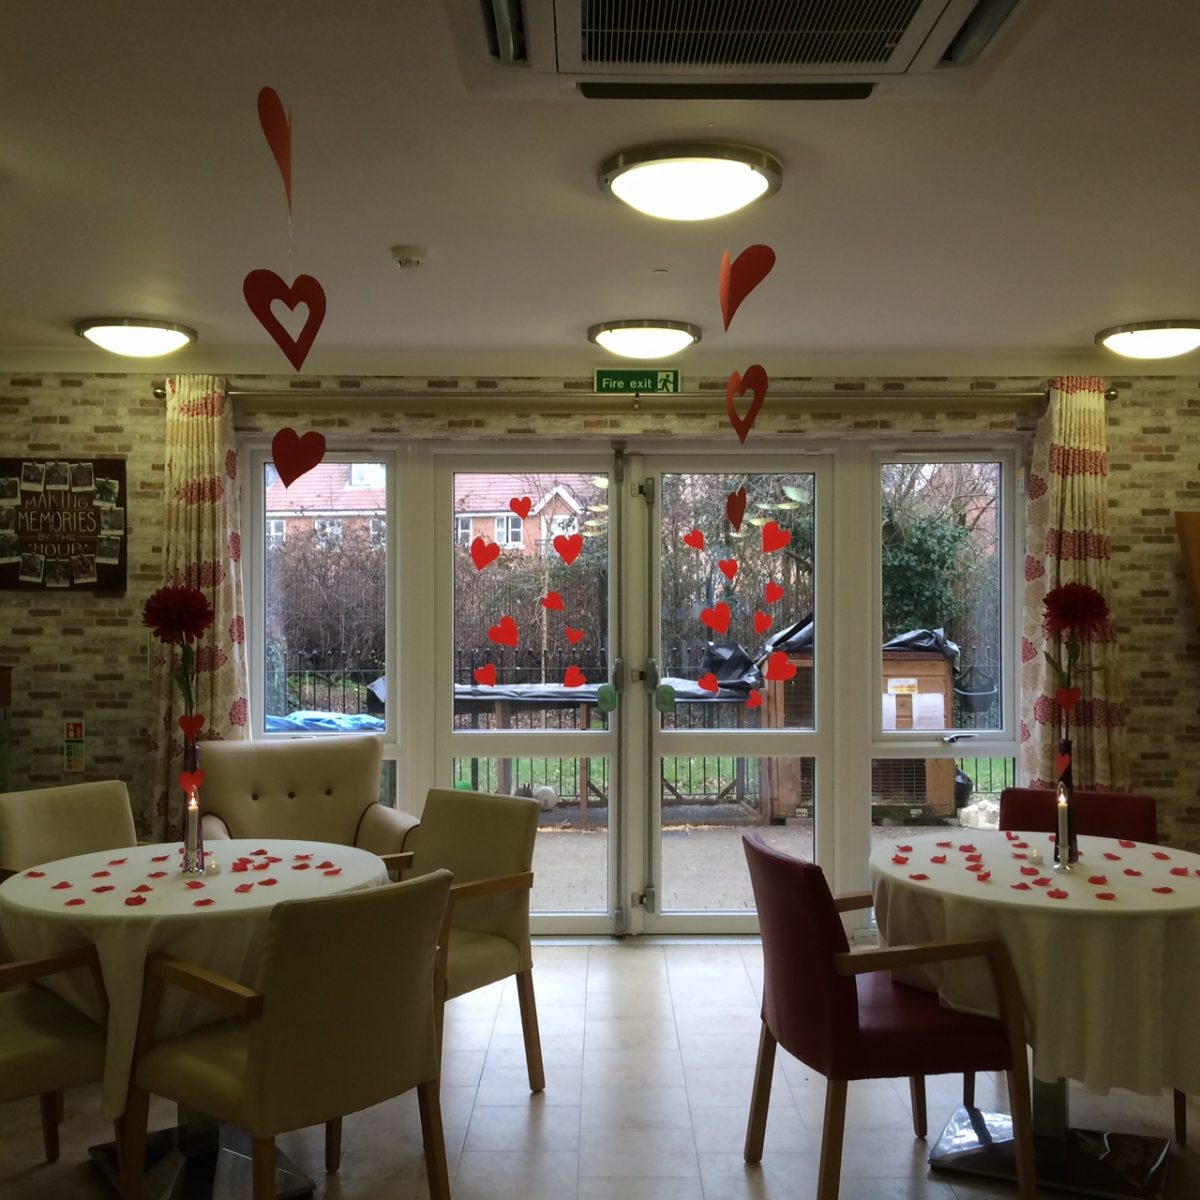 Happy Valentines from Orchid Care Home